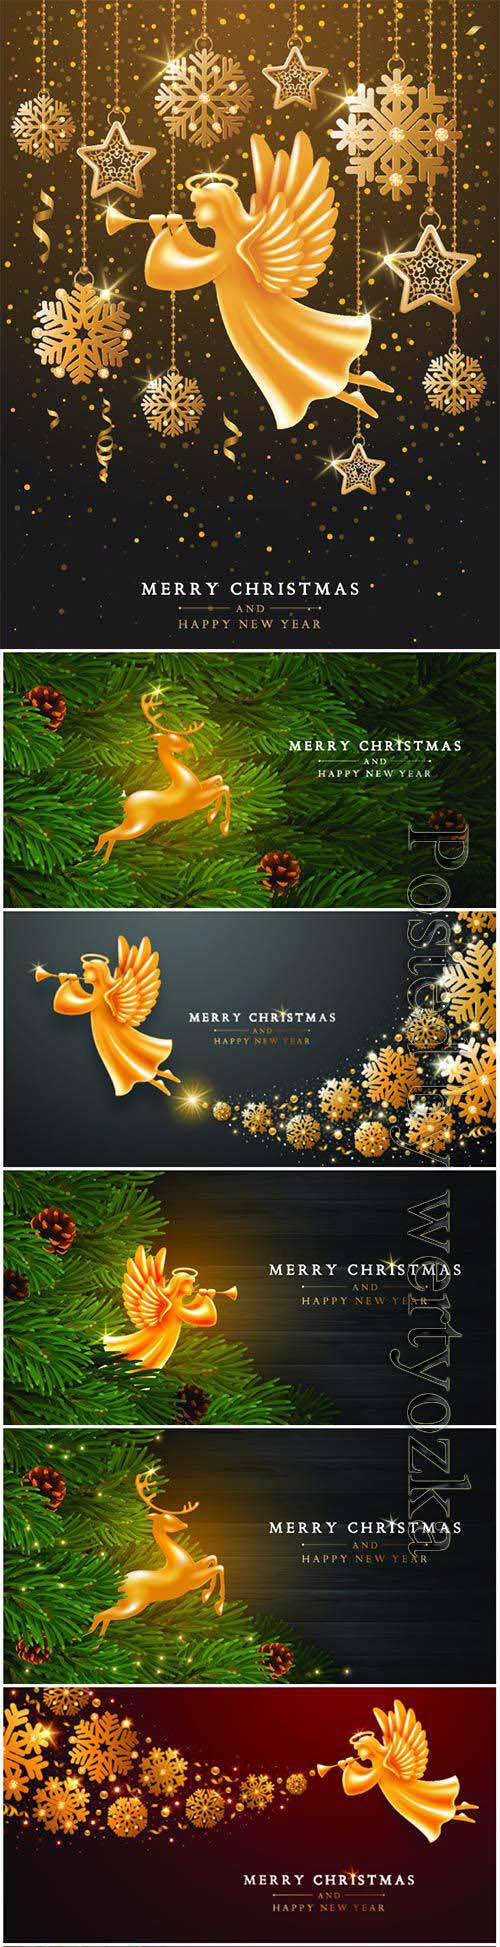 Christmas background with angels and deers in vector